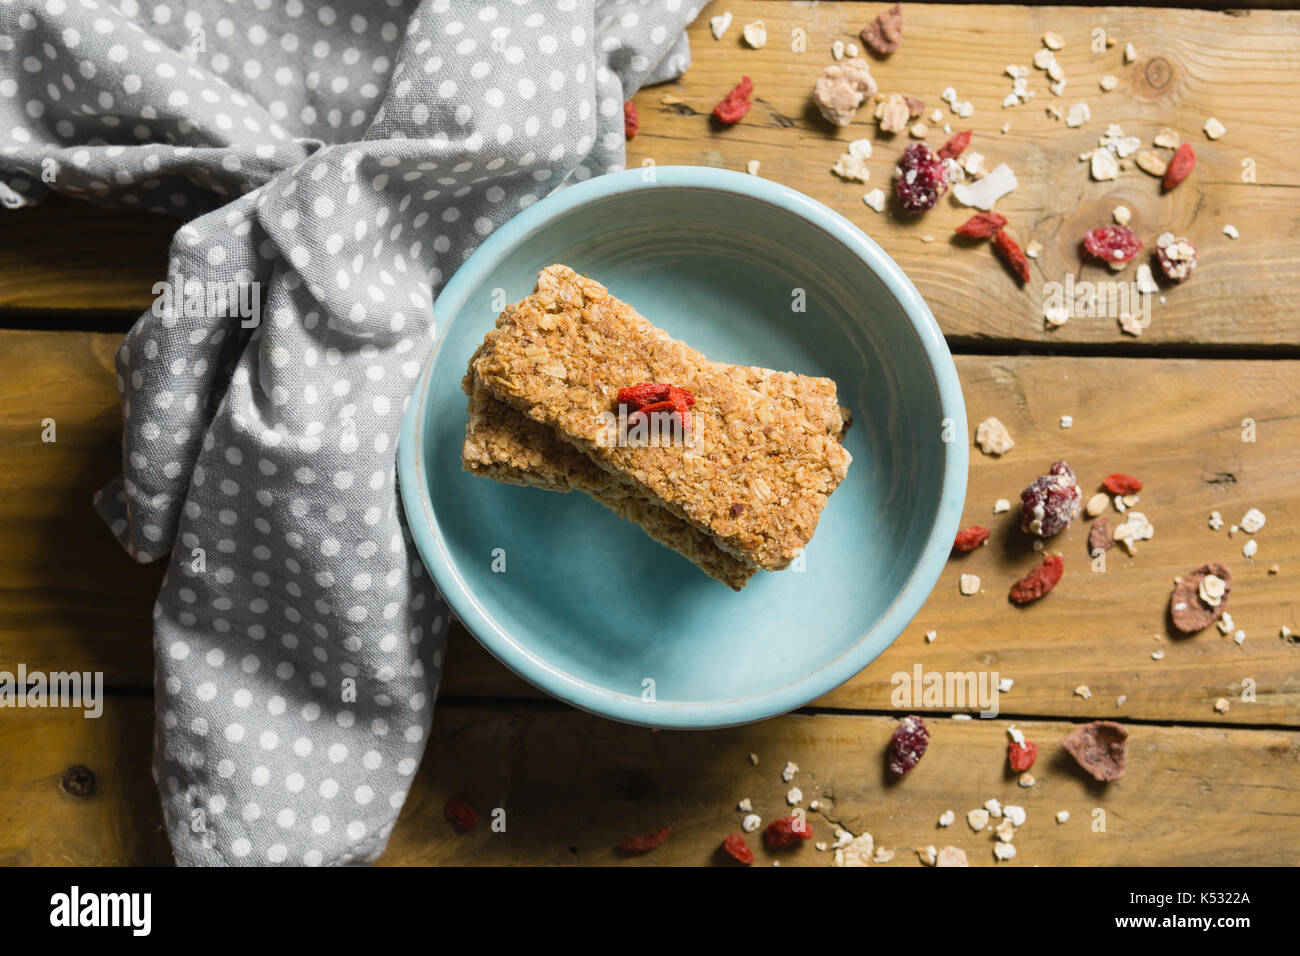 Overhead view of granola bar in bowl - Stock Image